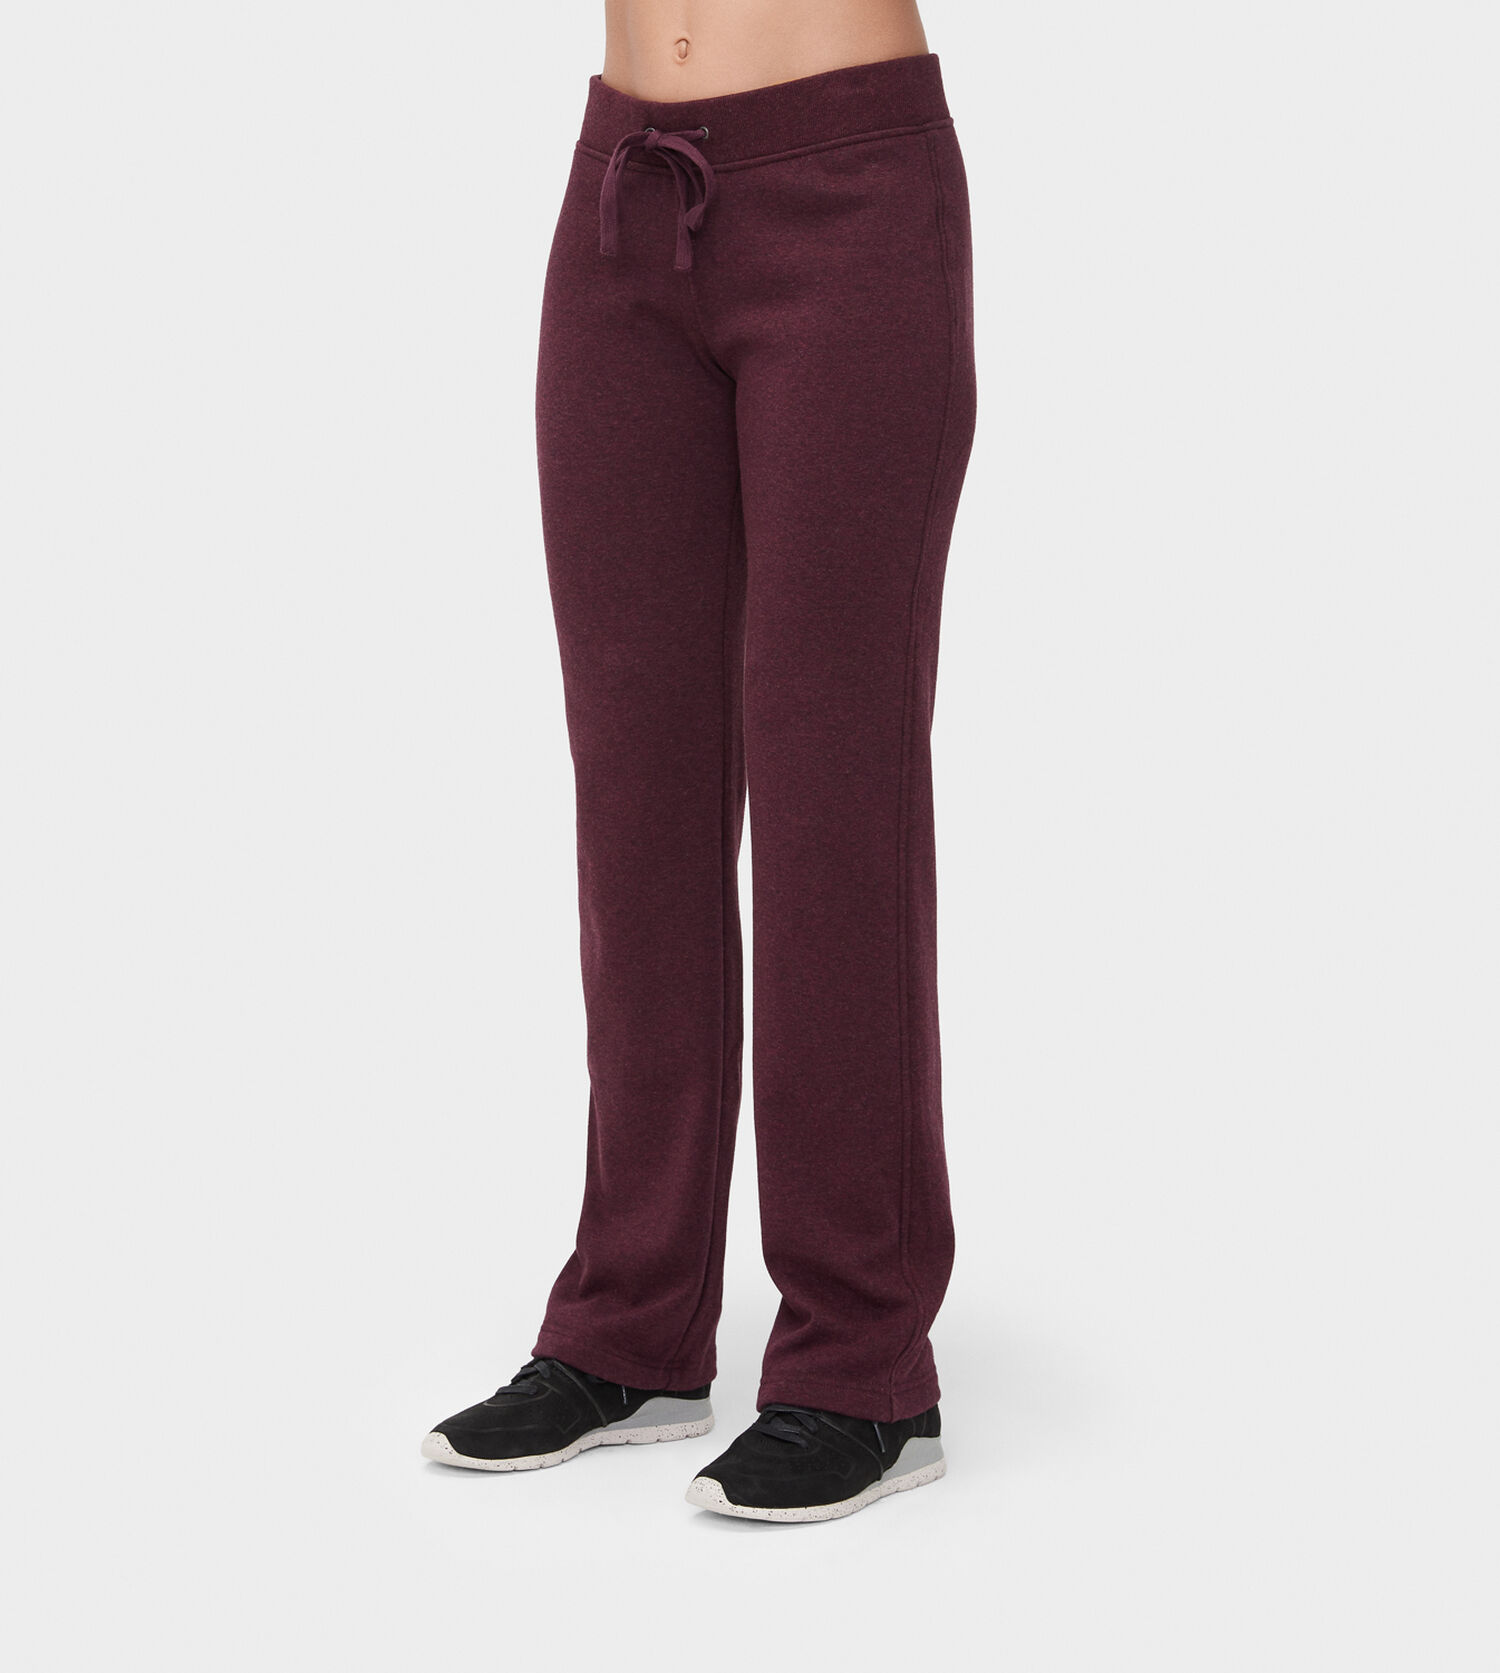 f00de965db8 Women's Share this product Penny Pants